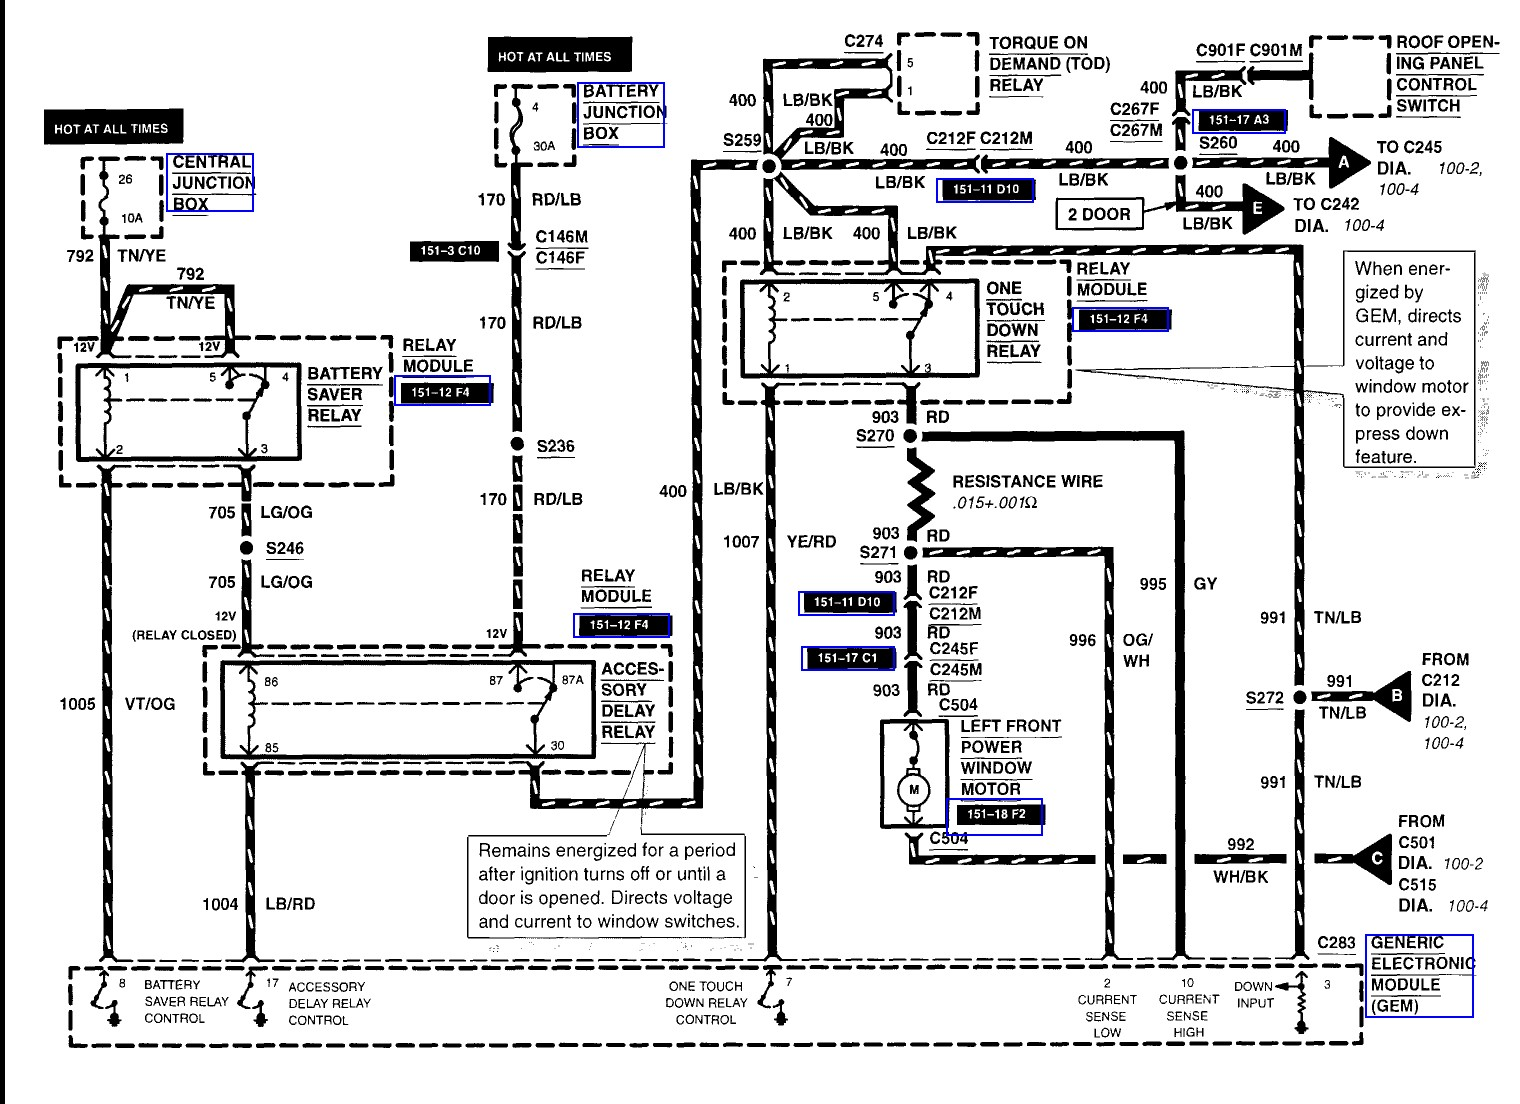 2005 ford escape relay diagram schematic diagrams wiring diagram for 1998 ford f150 2005 ford escape parts diagram trusted wiring diagram 2005 dodge magnum relay diagram 2005 ford escape relay diagram